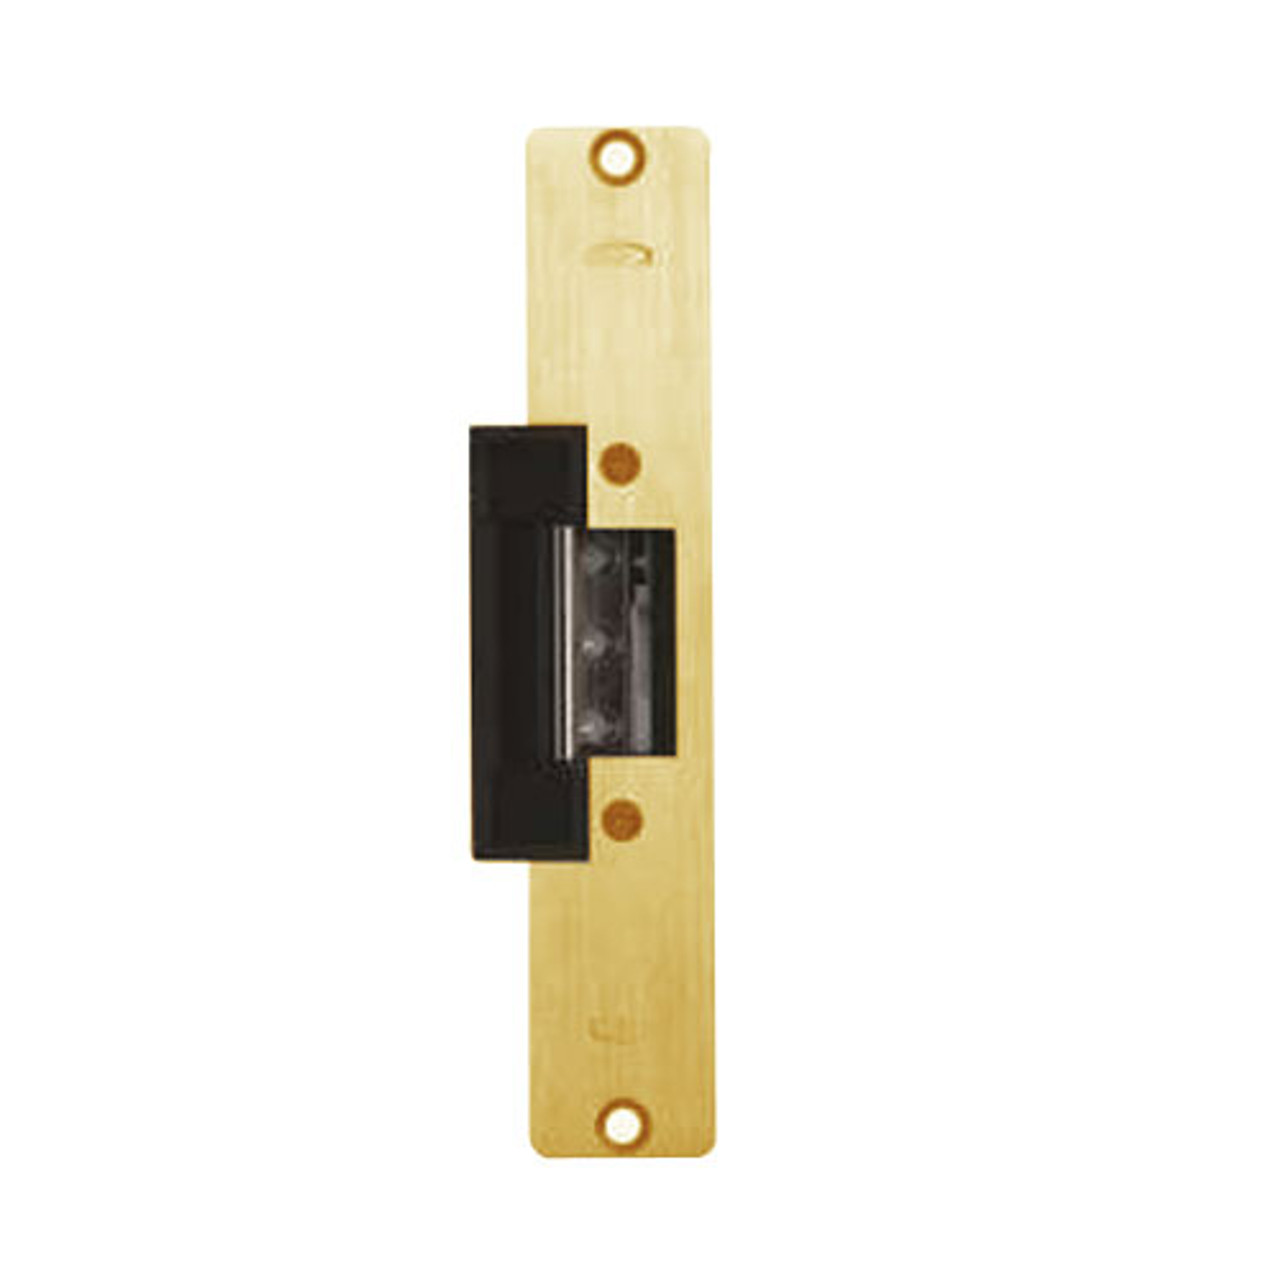 2678-US10-6-14AC/DC Trine Light Commercial Adjustable 2000 Series Electric Strikes in Satin Bronze Finish